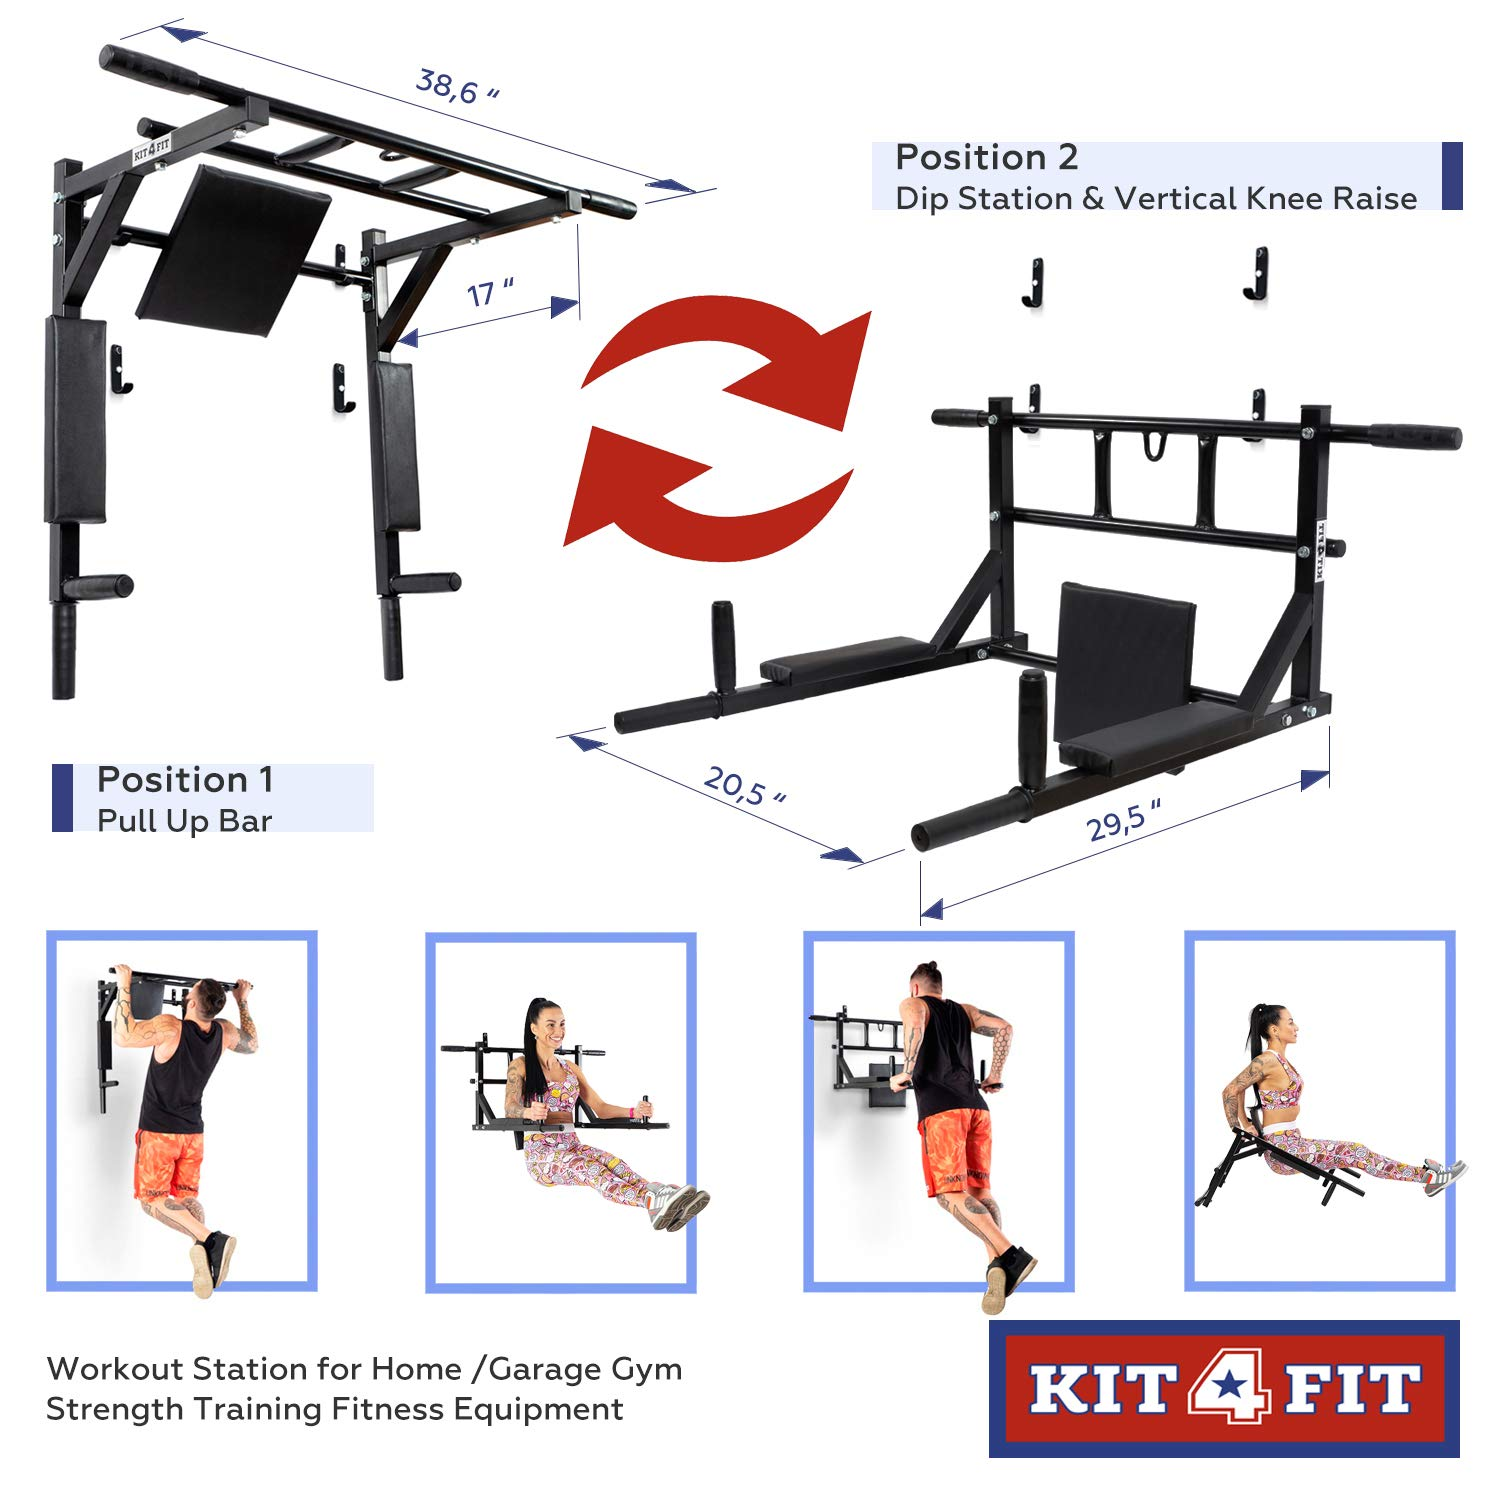 Wall Mounted Pull Up Bar and Dip Station with Vertical Knee Raise Station Indoor Home Exercise Equipment for Men Woman and Kids Great for Workout and Fitness (Black) by Kit4Fit (Image #2)